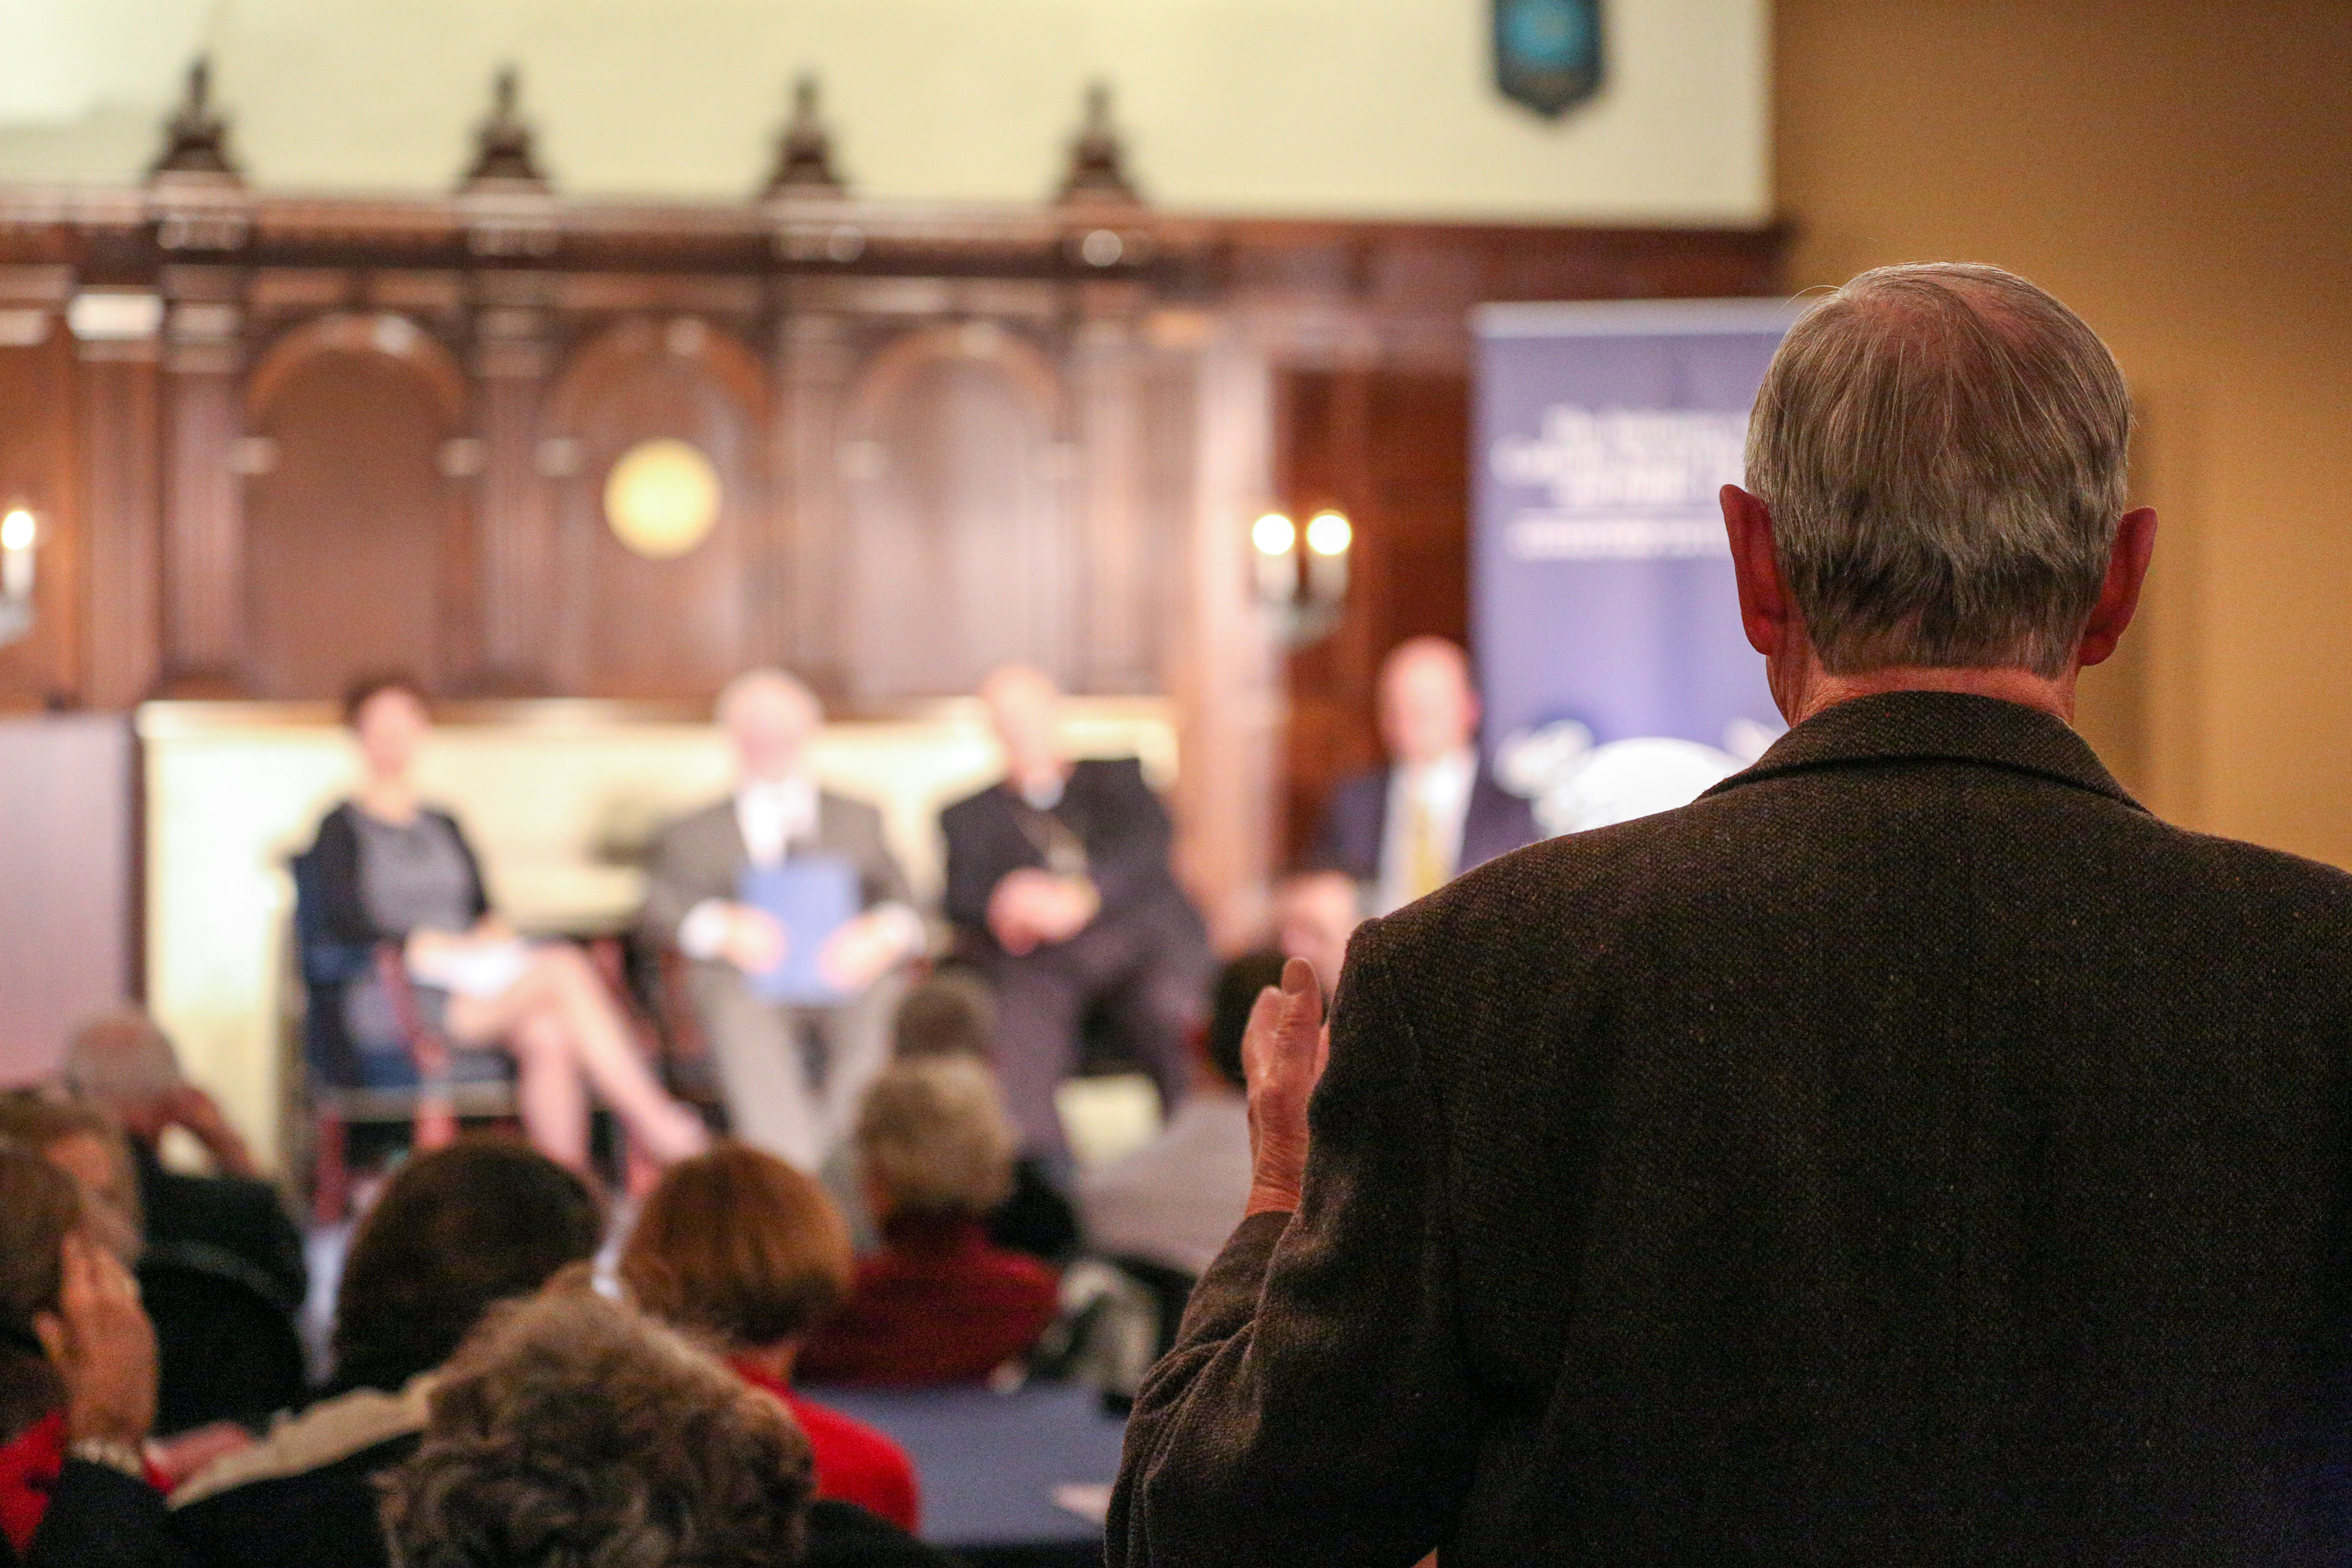 A member of the audience asks a question of the panel.